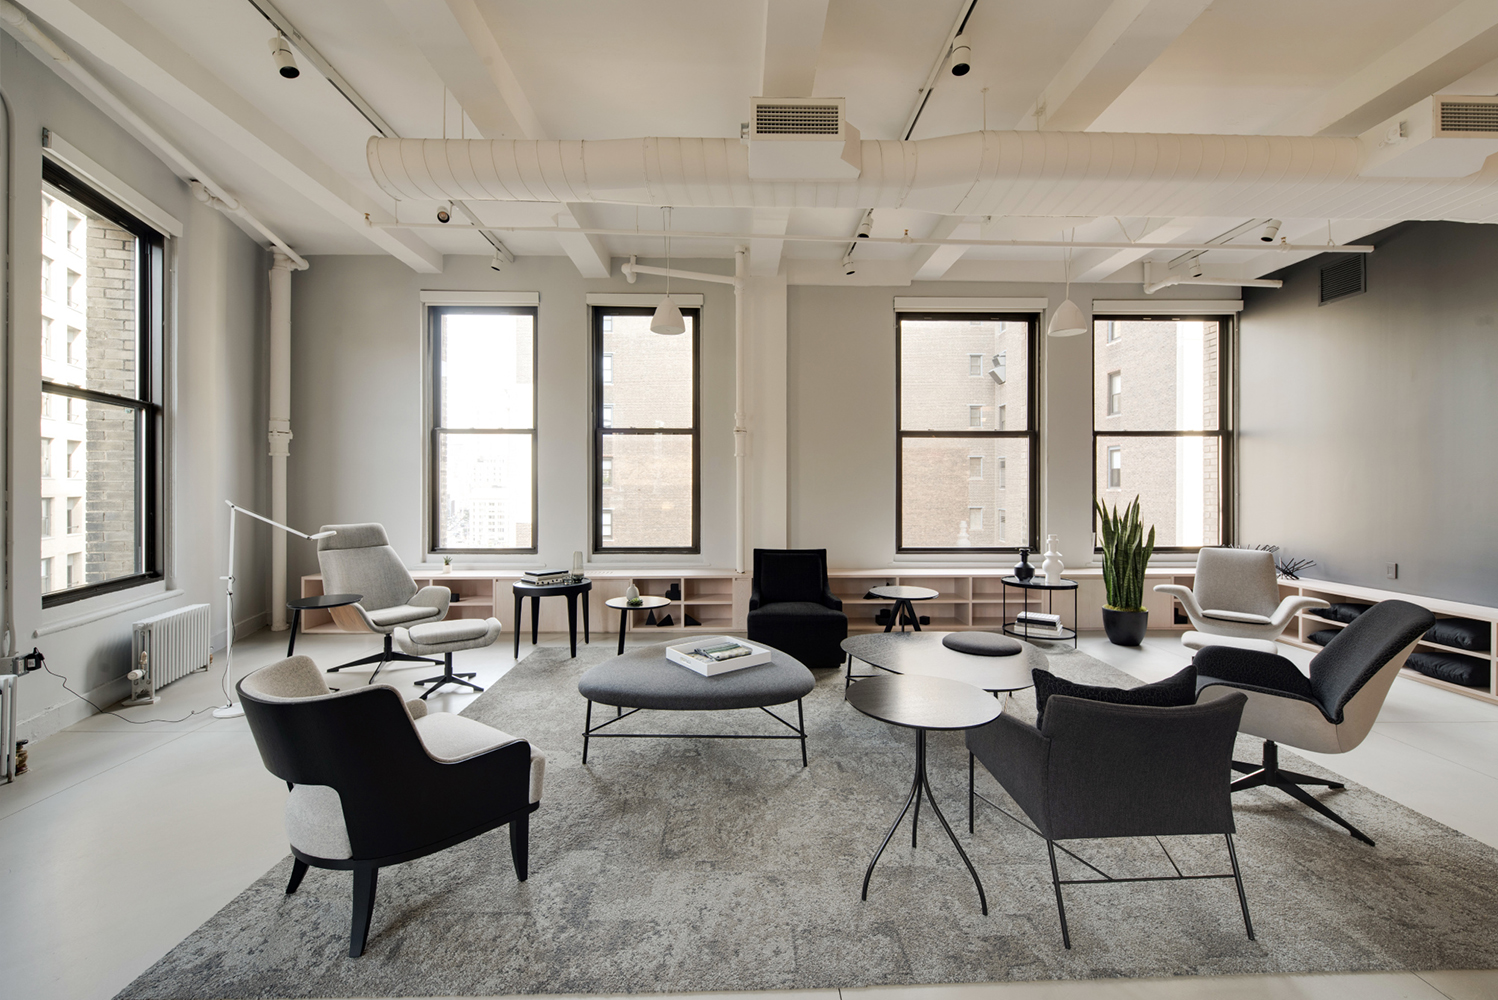 The showroom is located on the 8th Floor of 920 Broadway in New York City.